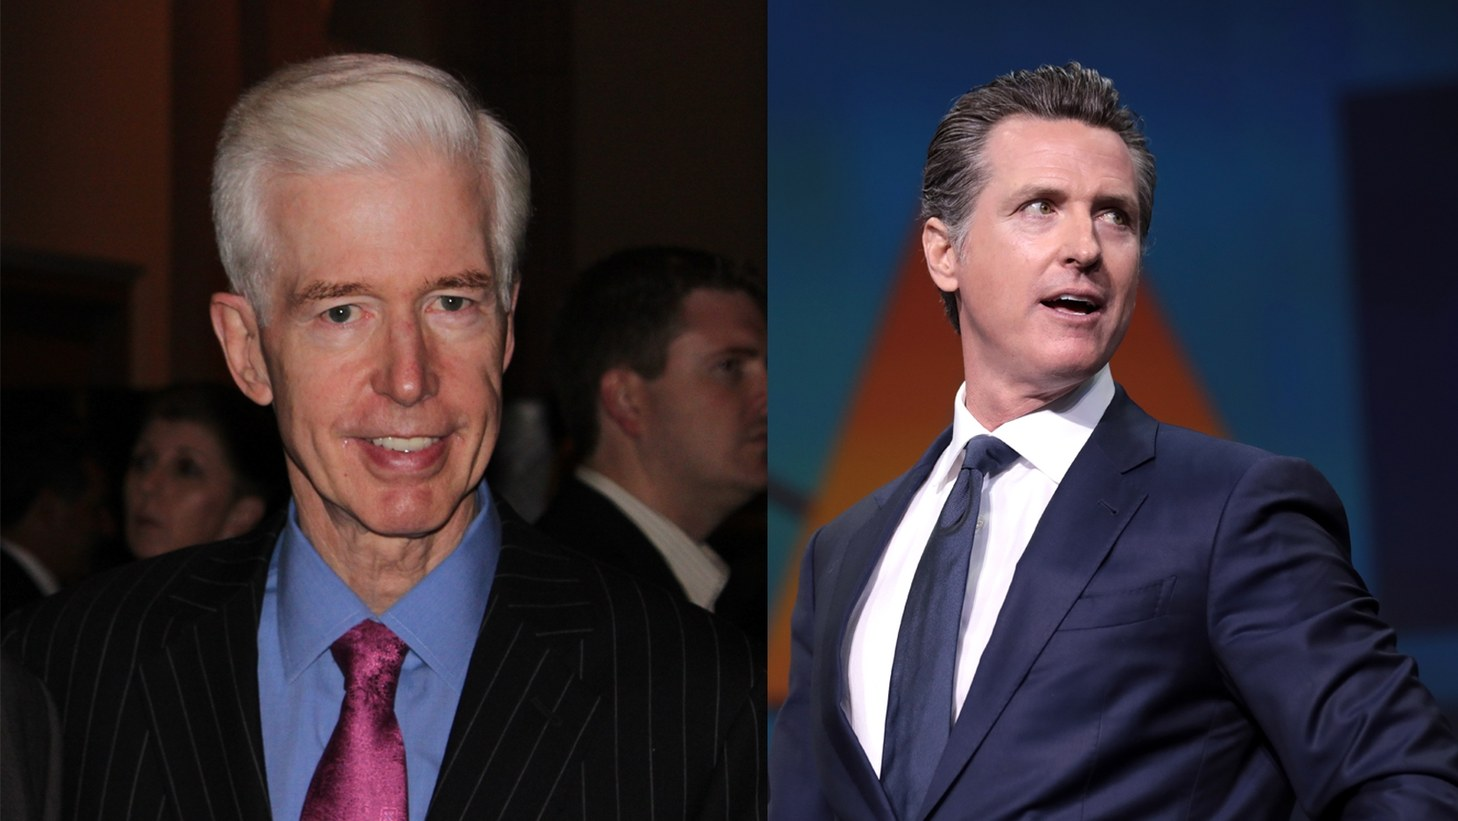 Former California Governor Gray Davis might be the most powerful ally for Governor Gavin Newsom and the state's ruling Democrats in defeating this year's recall campaign. That's according to Zocalo commentator Joe Mathews.